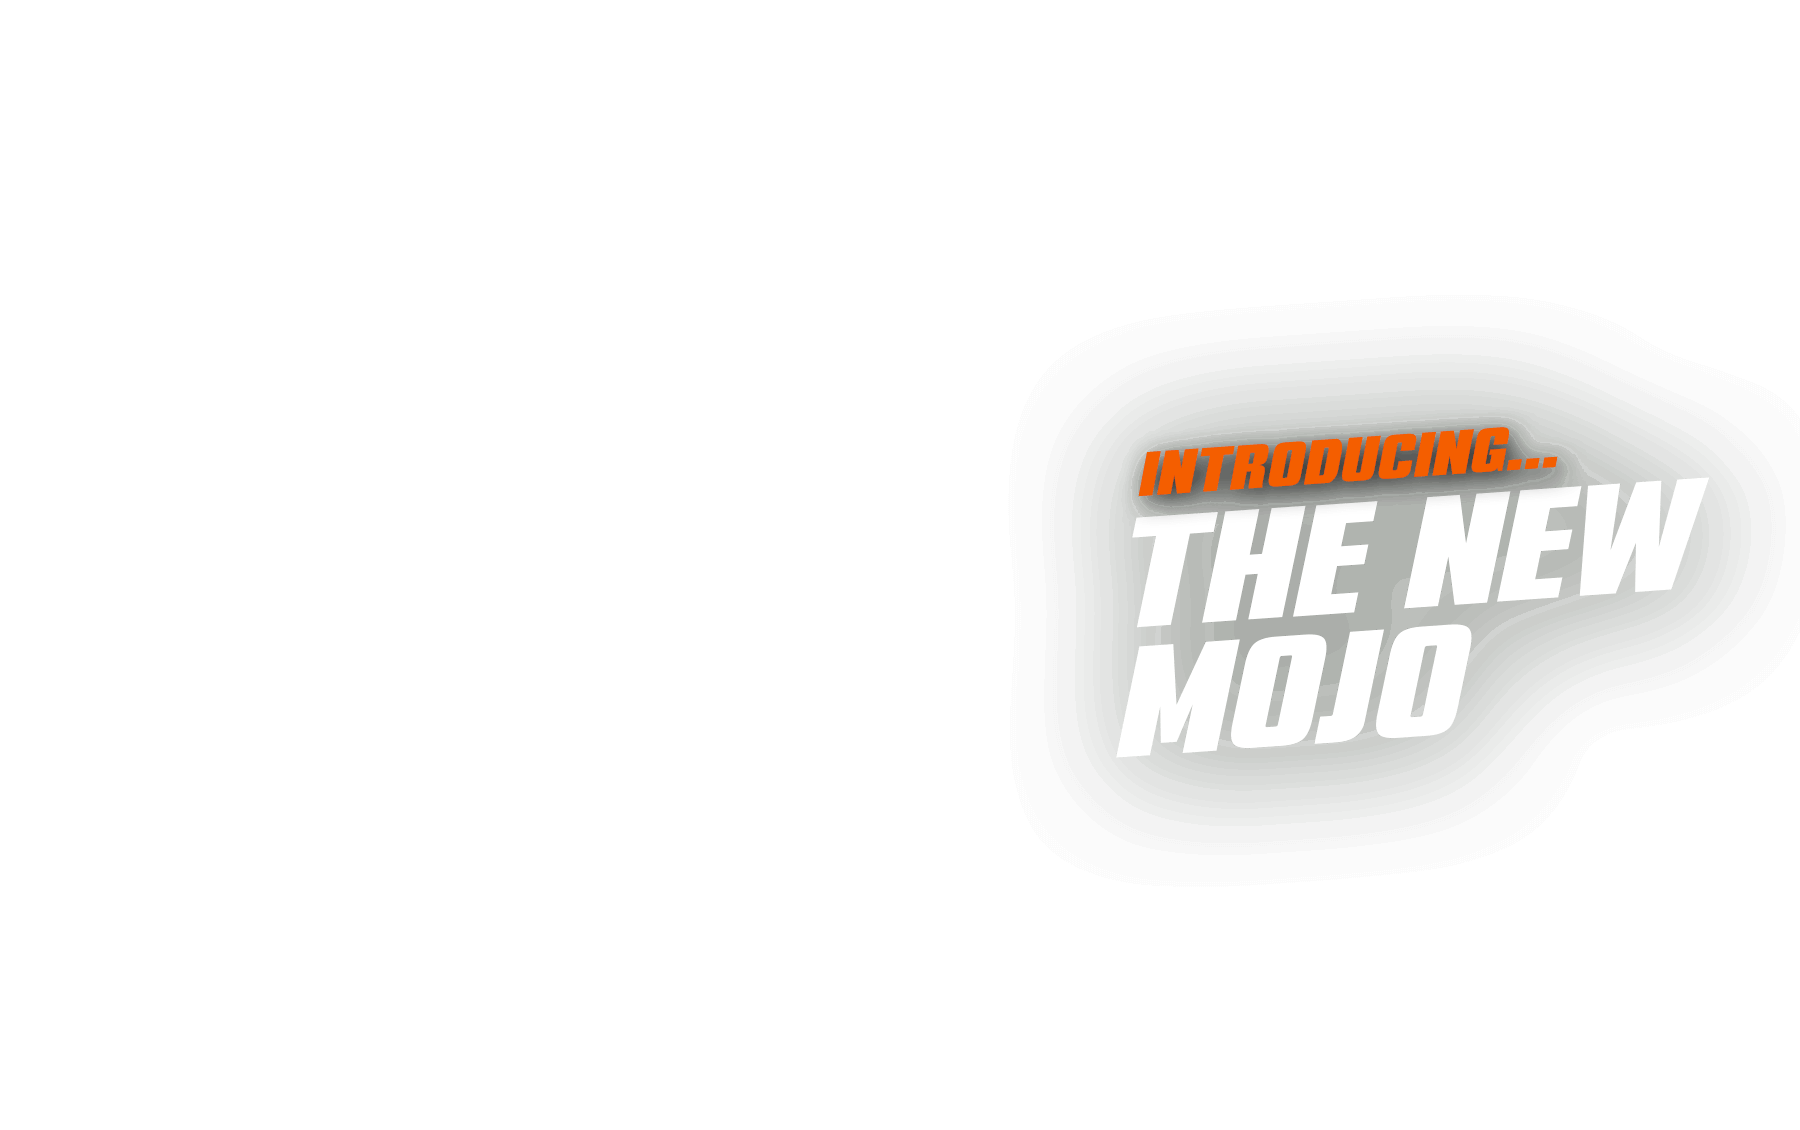 Introducing the new Mojo